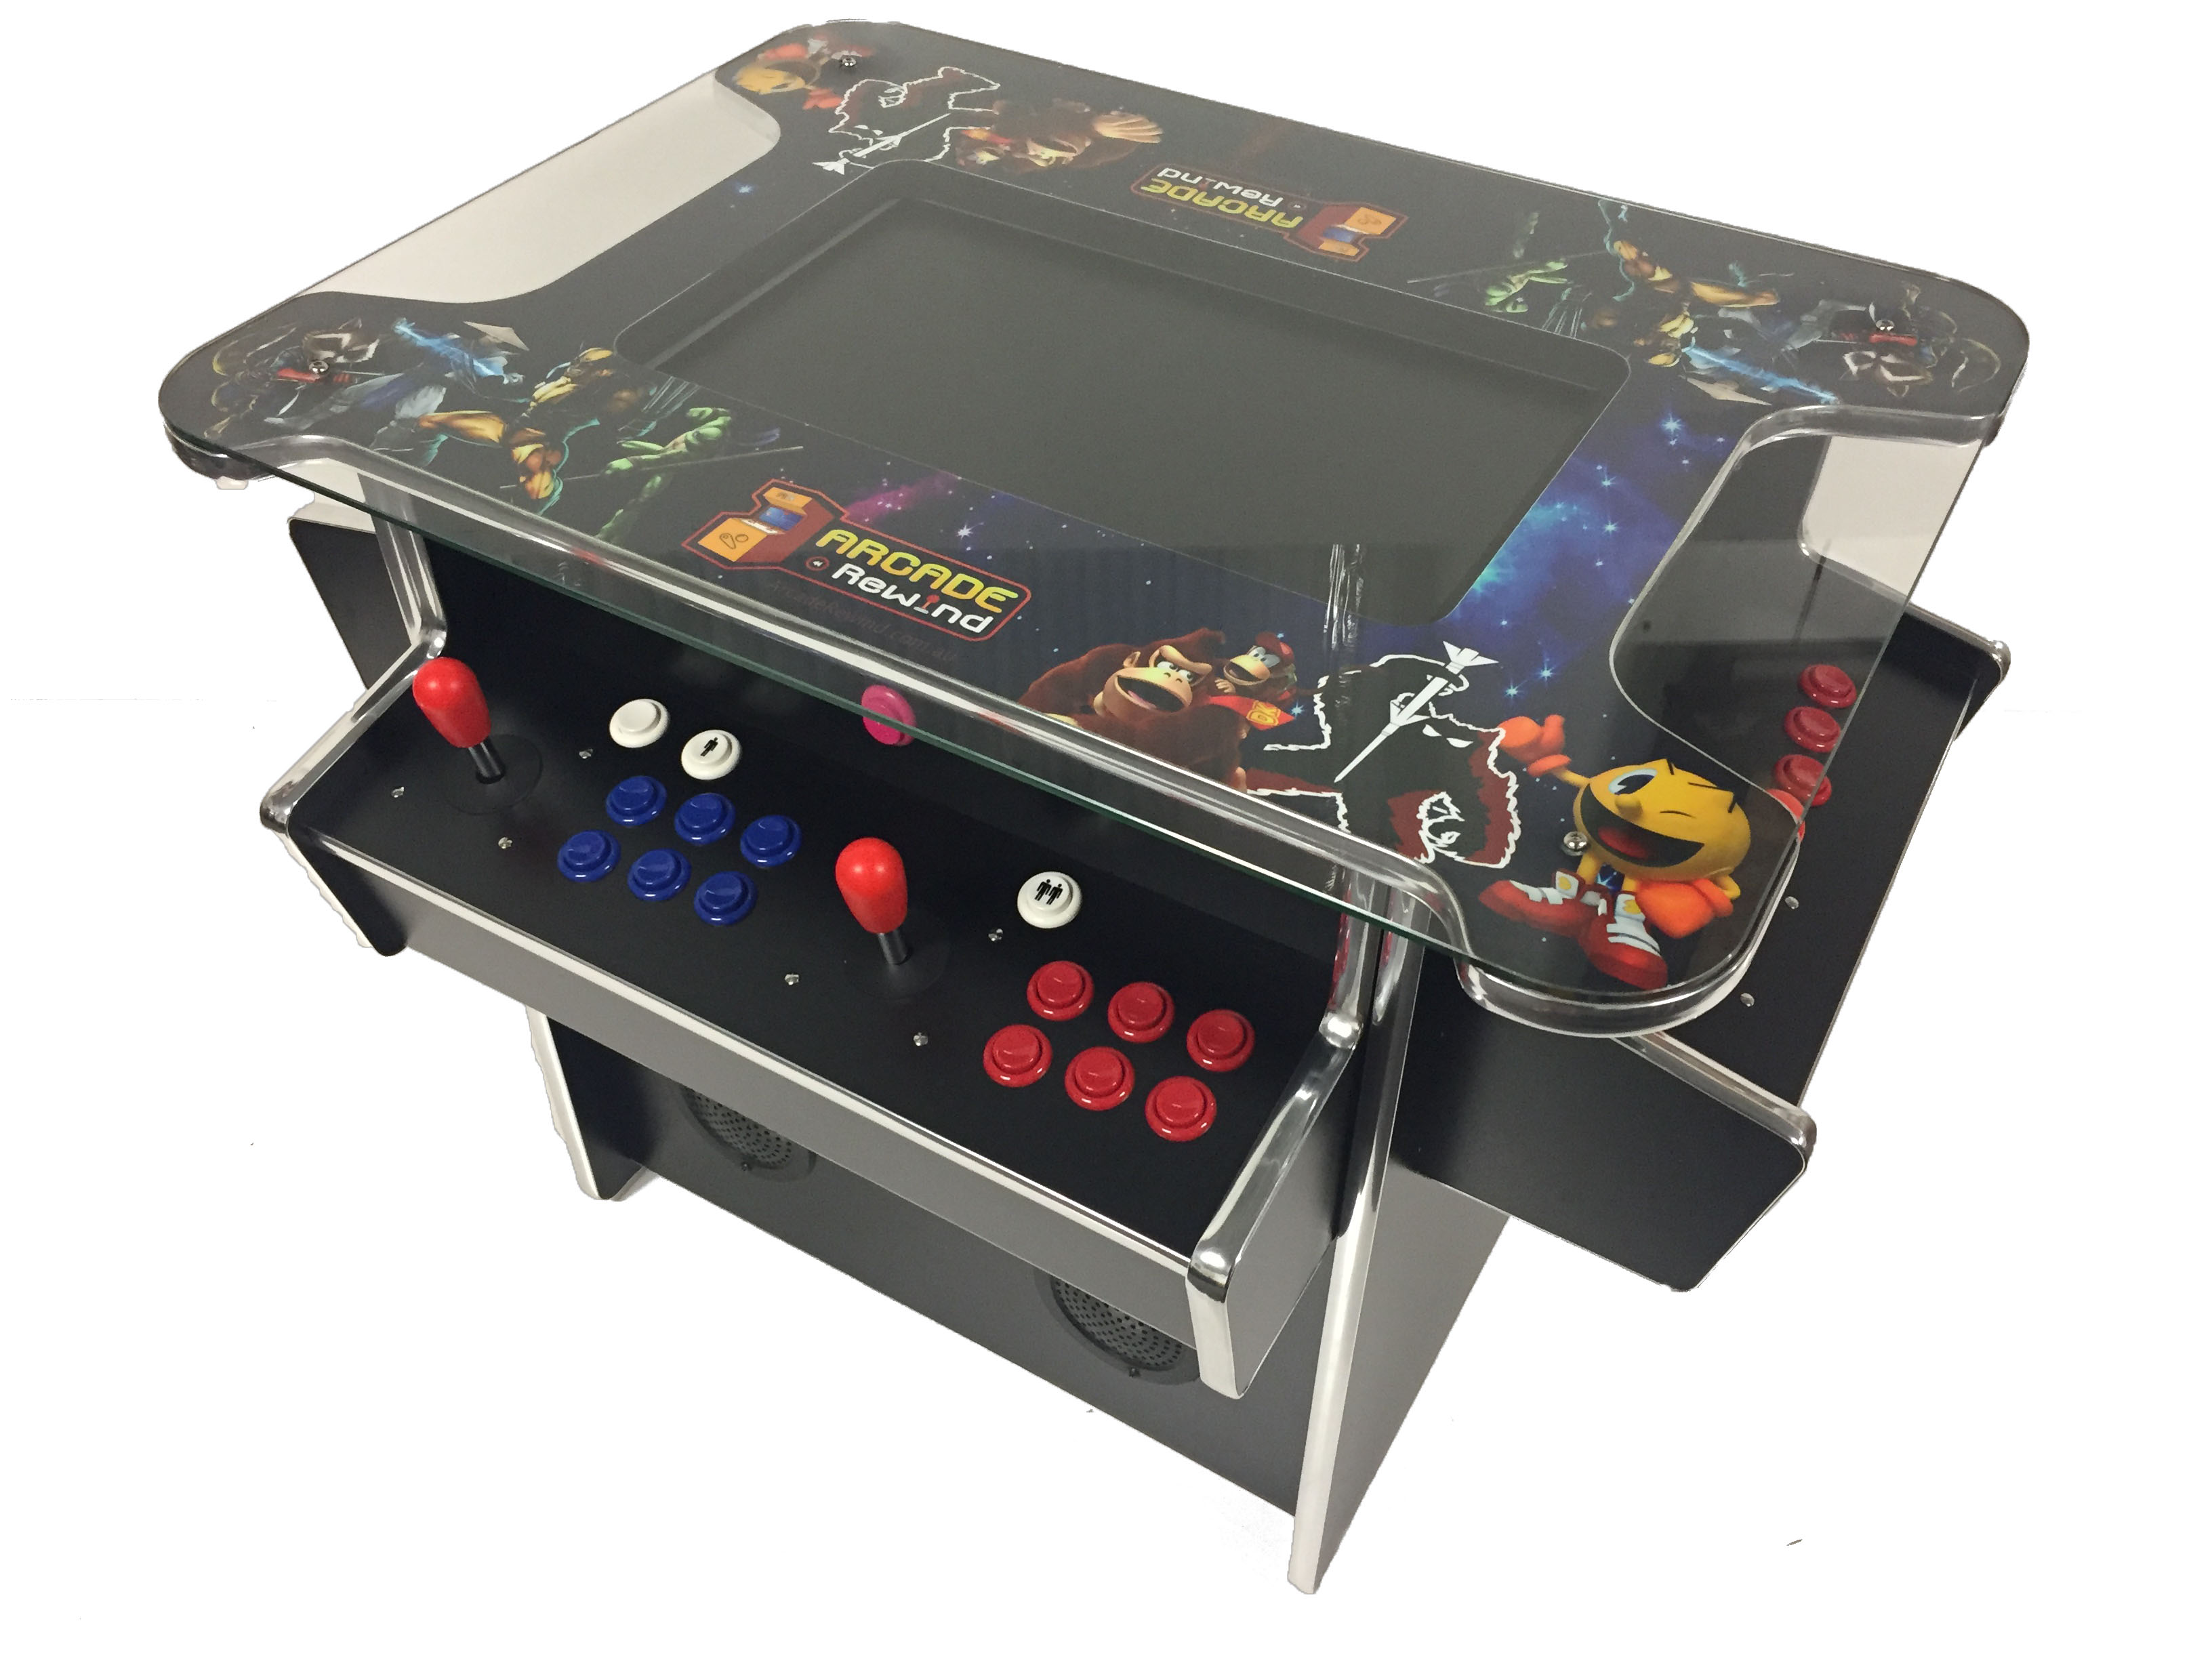 Arcade Rewind 2475 Game Cocktail Arcade Machine